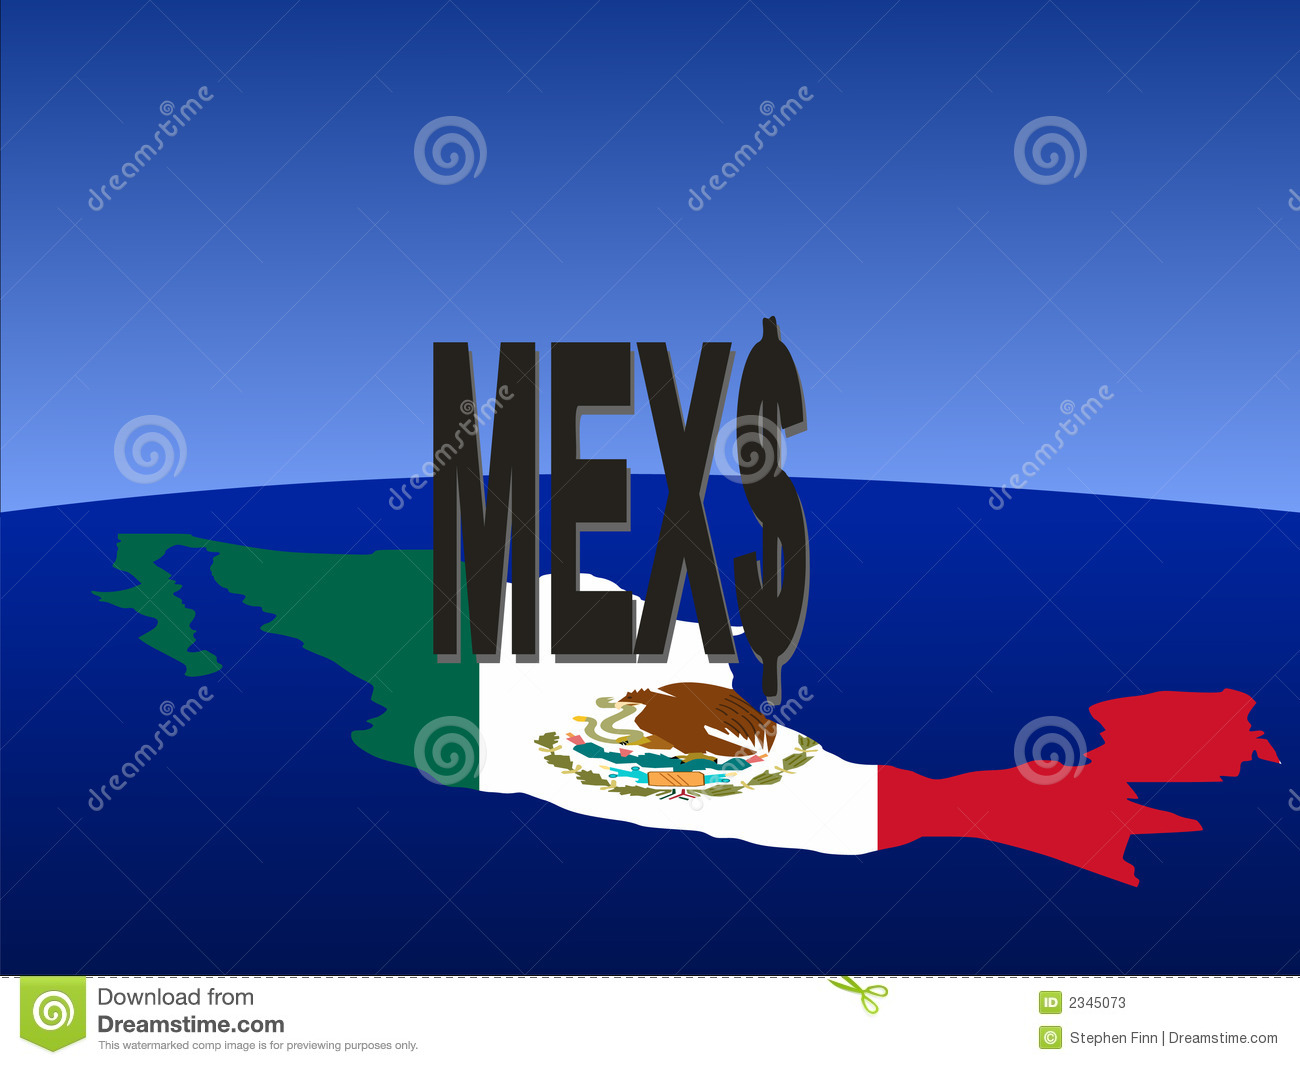 Mexican peso stock illustrations 124 mexican peso stock mexican peso sign with map giant mexican peso sign with map and flag of mexico biocorpaavc